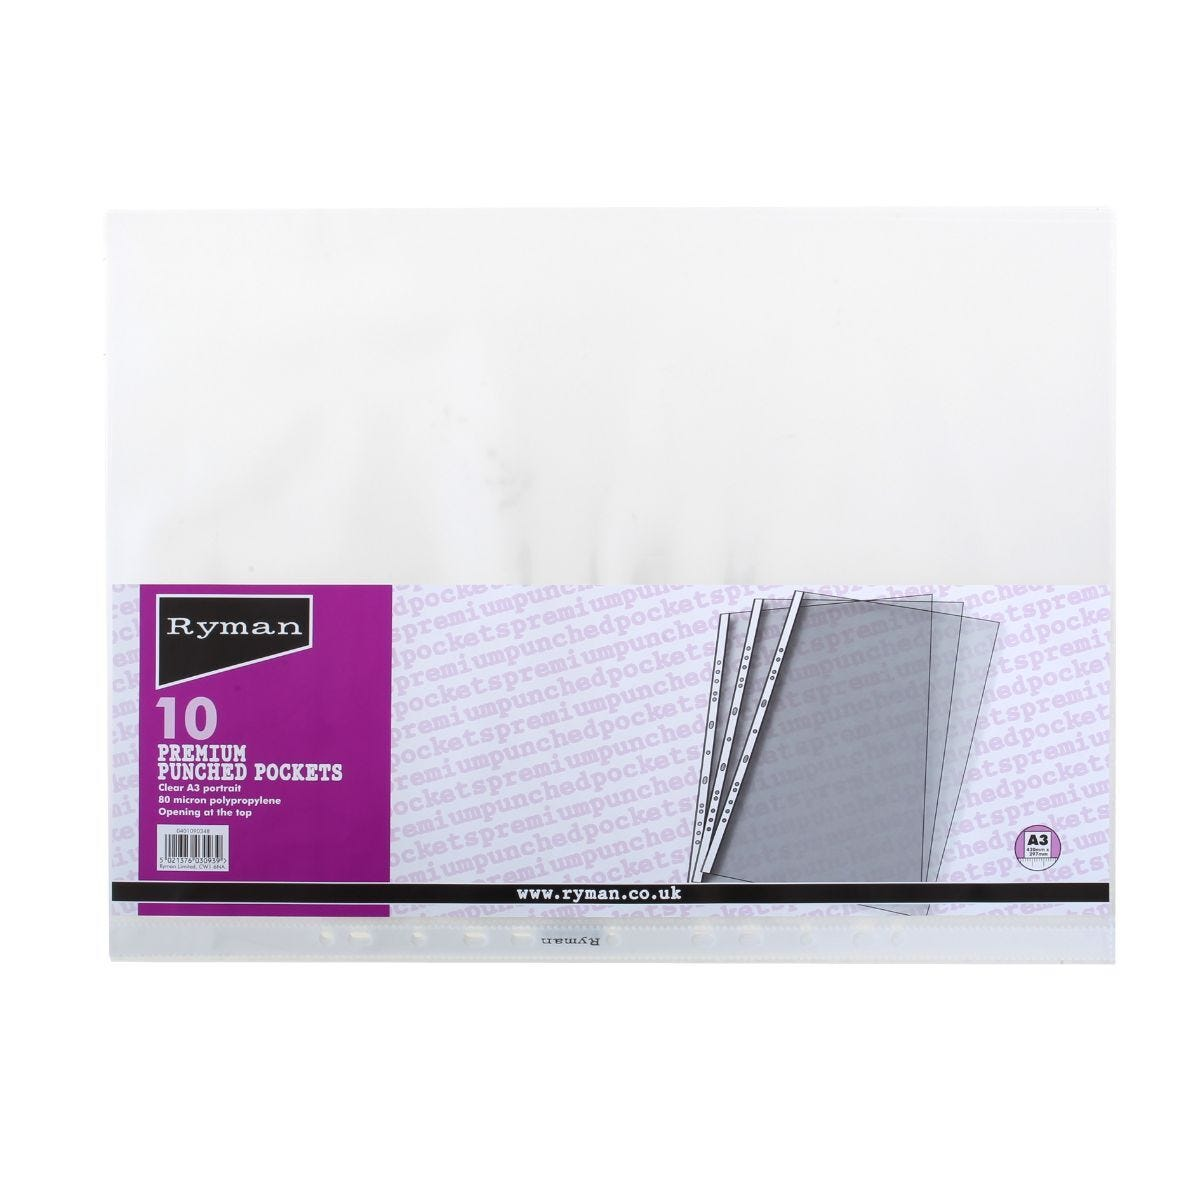 Ryman Premium Punched Pockets A3 80 Micron Pack of 10 Portrait